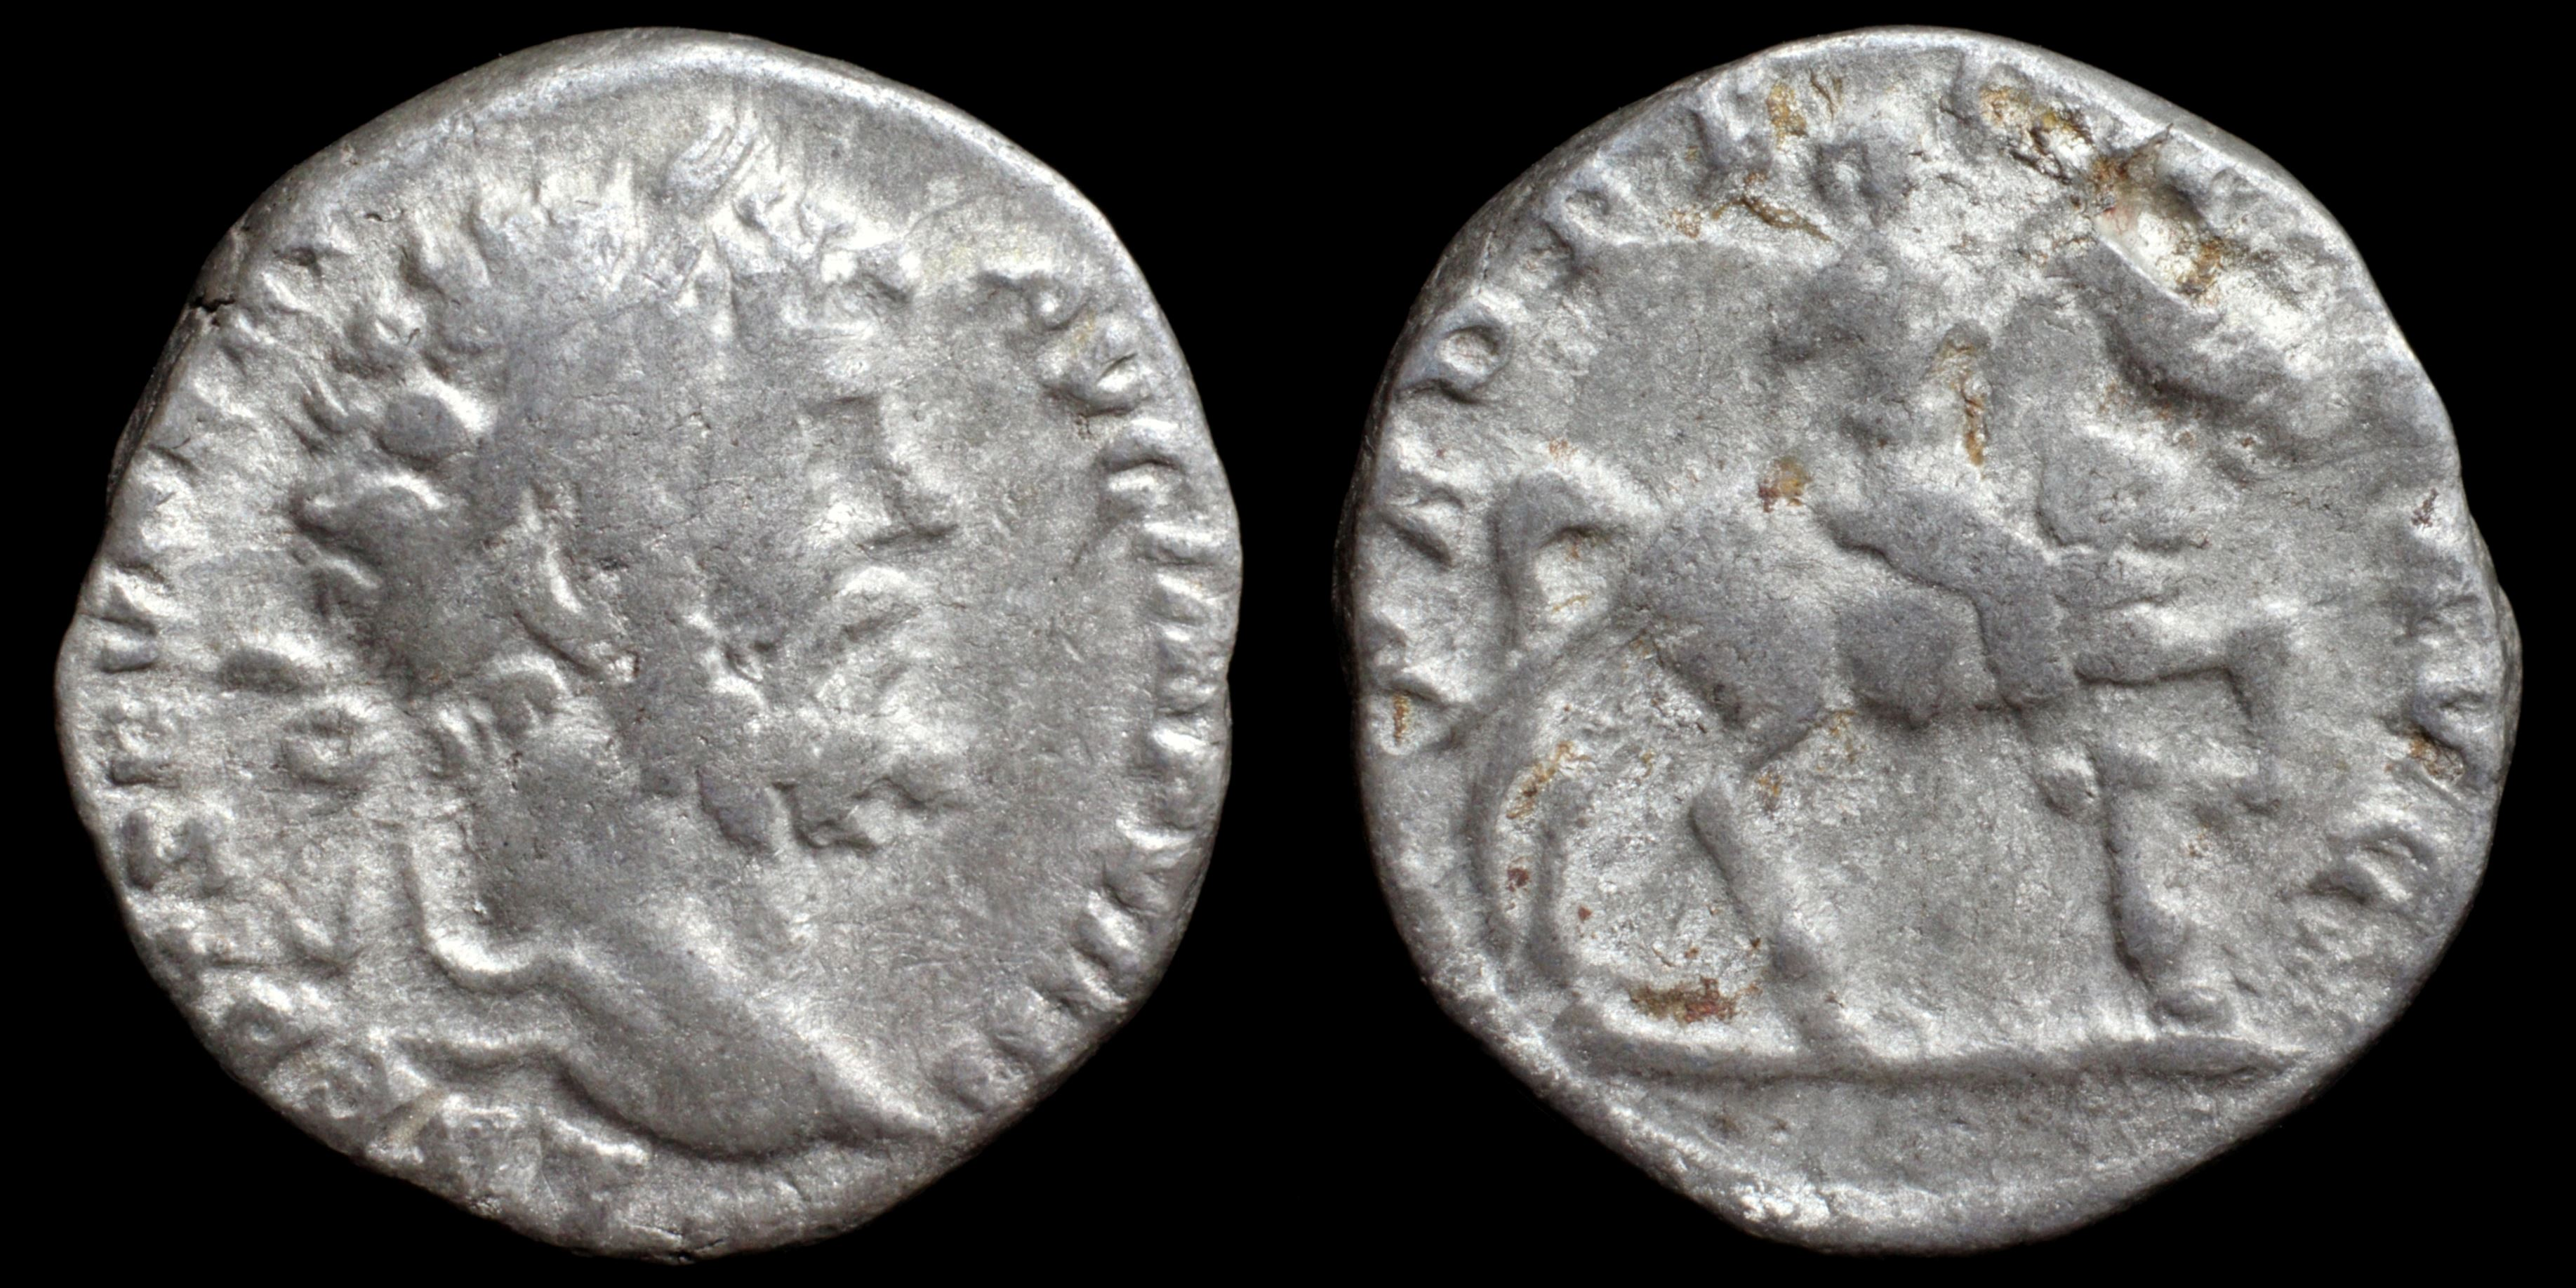 /Files/Images/Coinsite/CoinDB/412_Septimius_Severus_Profectio.jpg